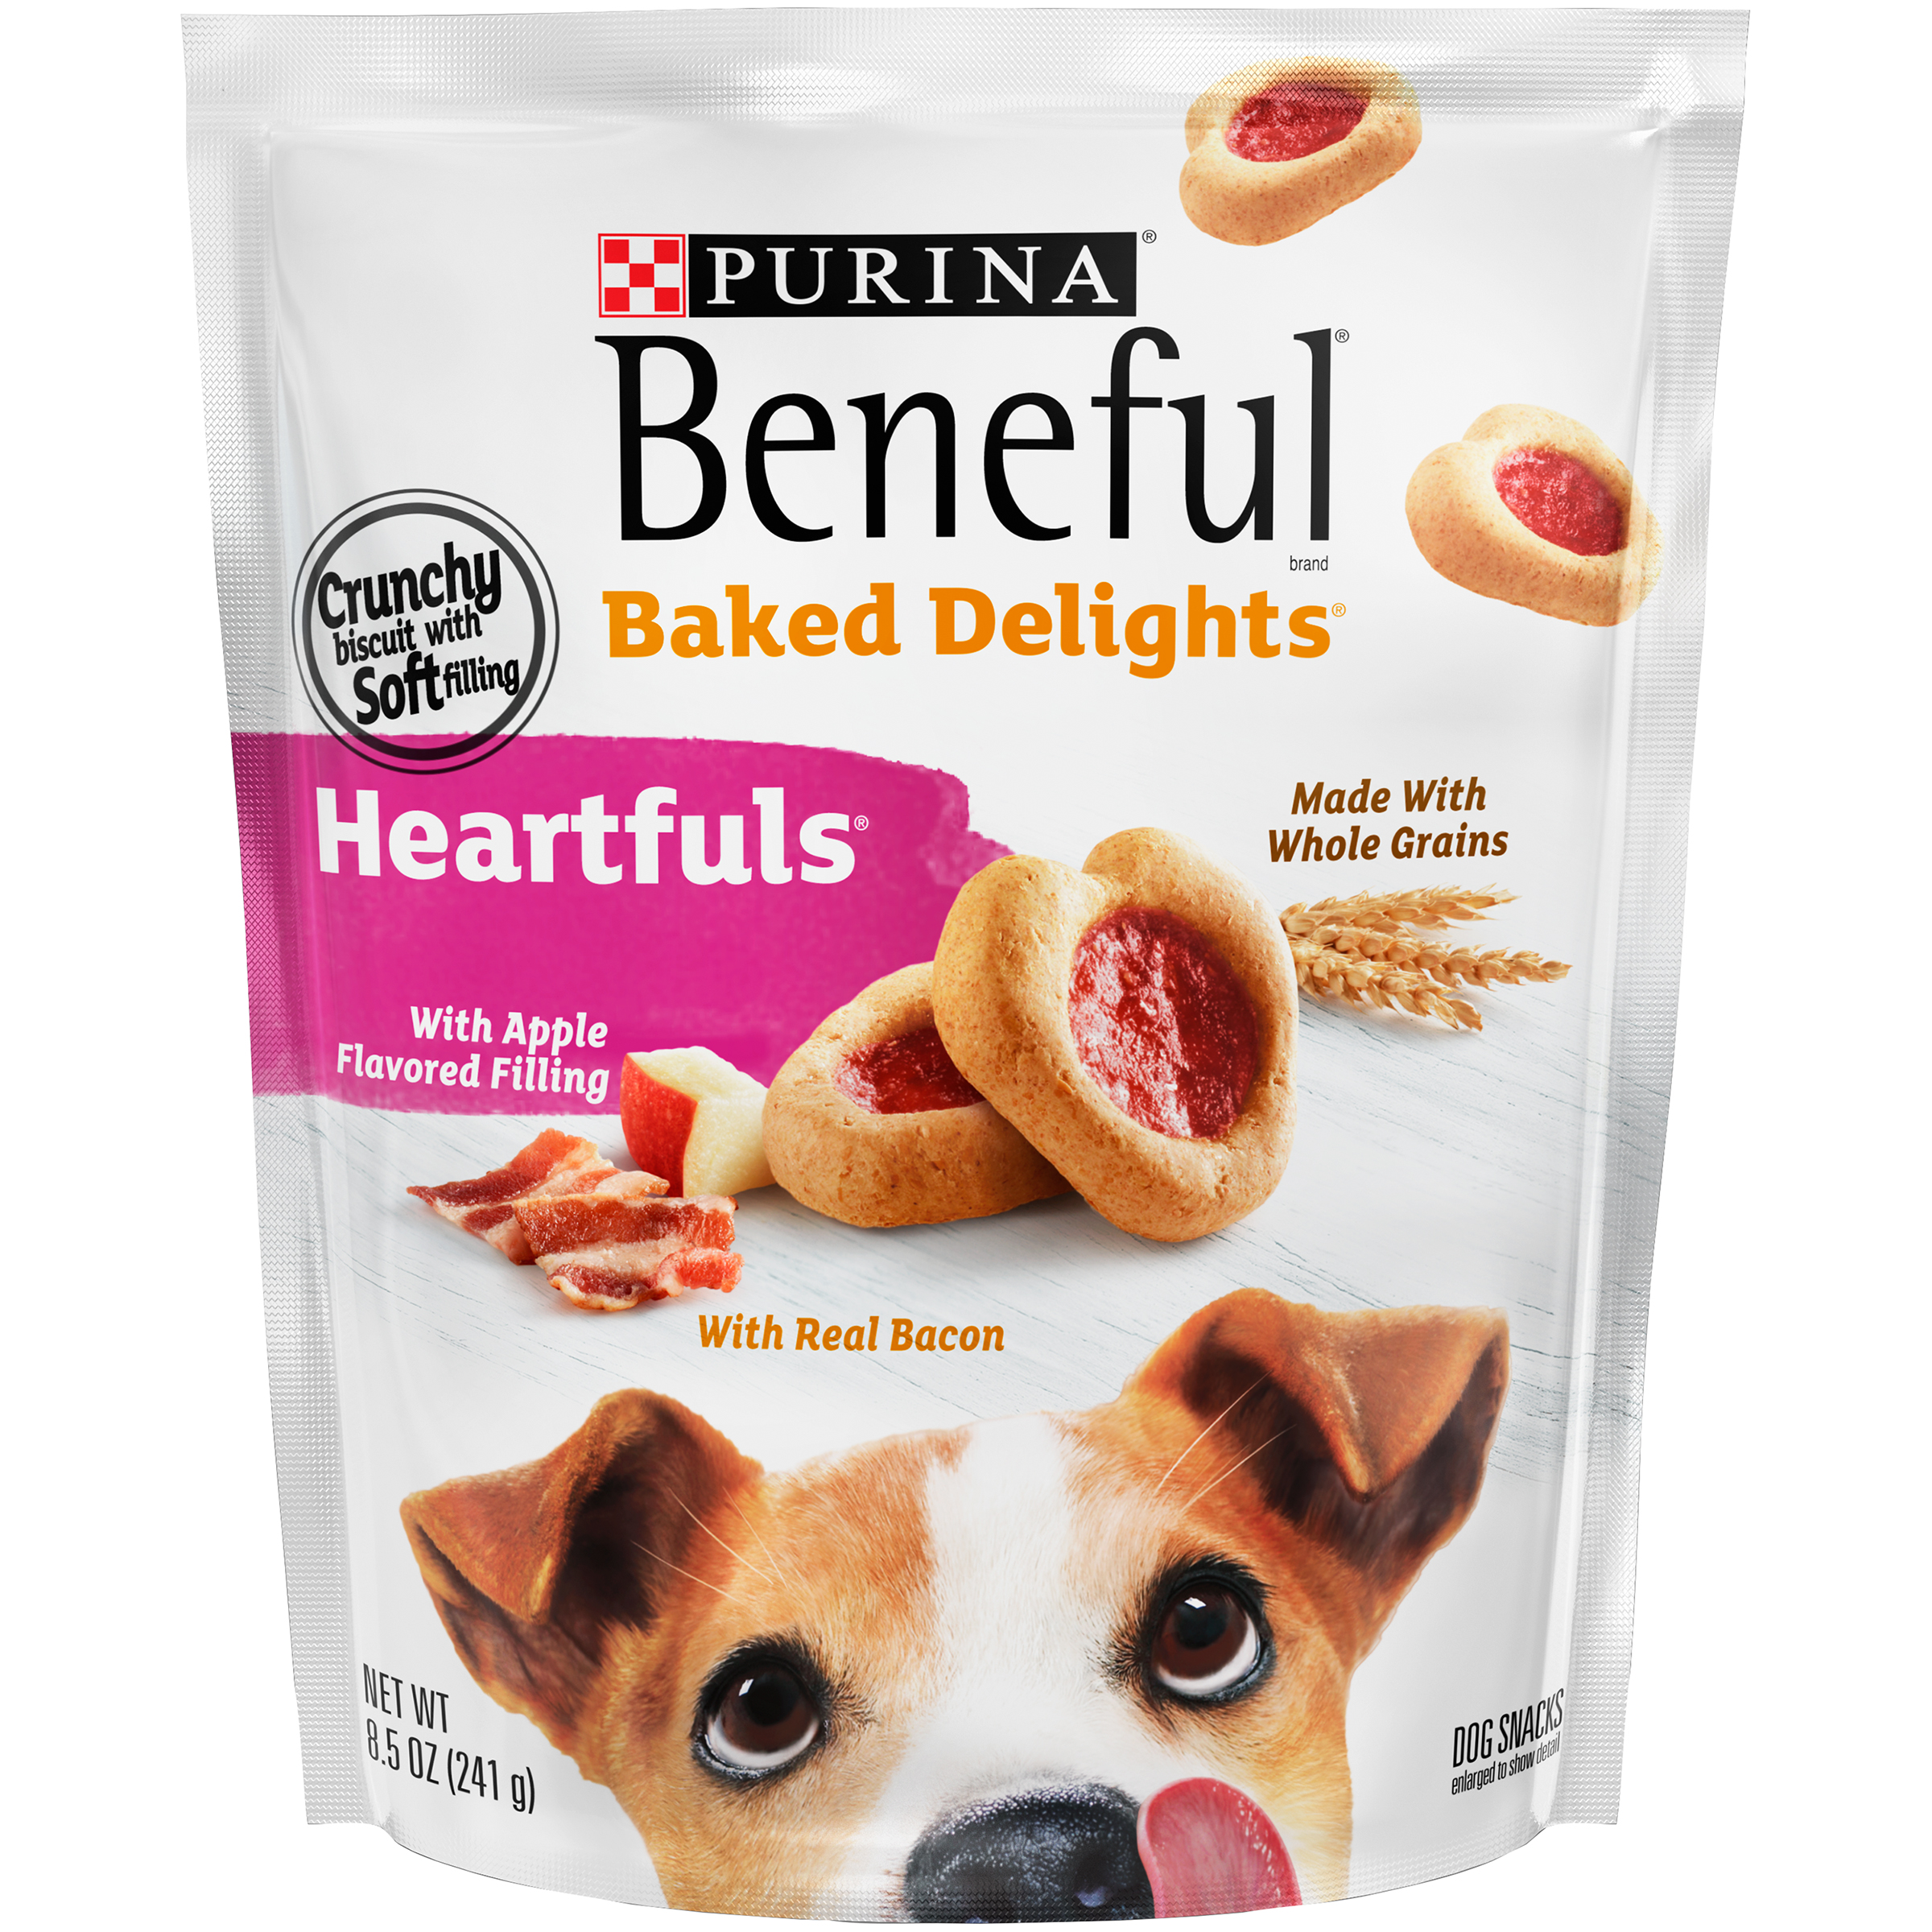 Purina Beneful Baked Delights Heartfuls Dog Snacks 8.5 oz. Pouch